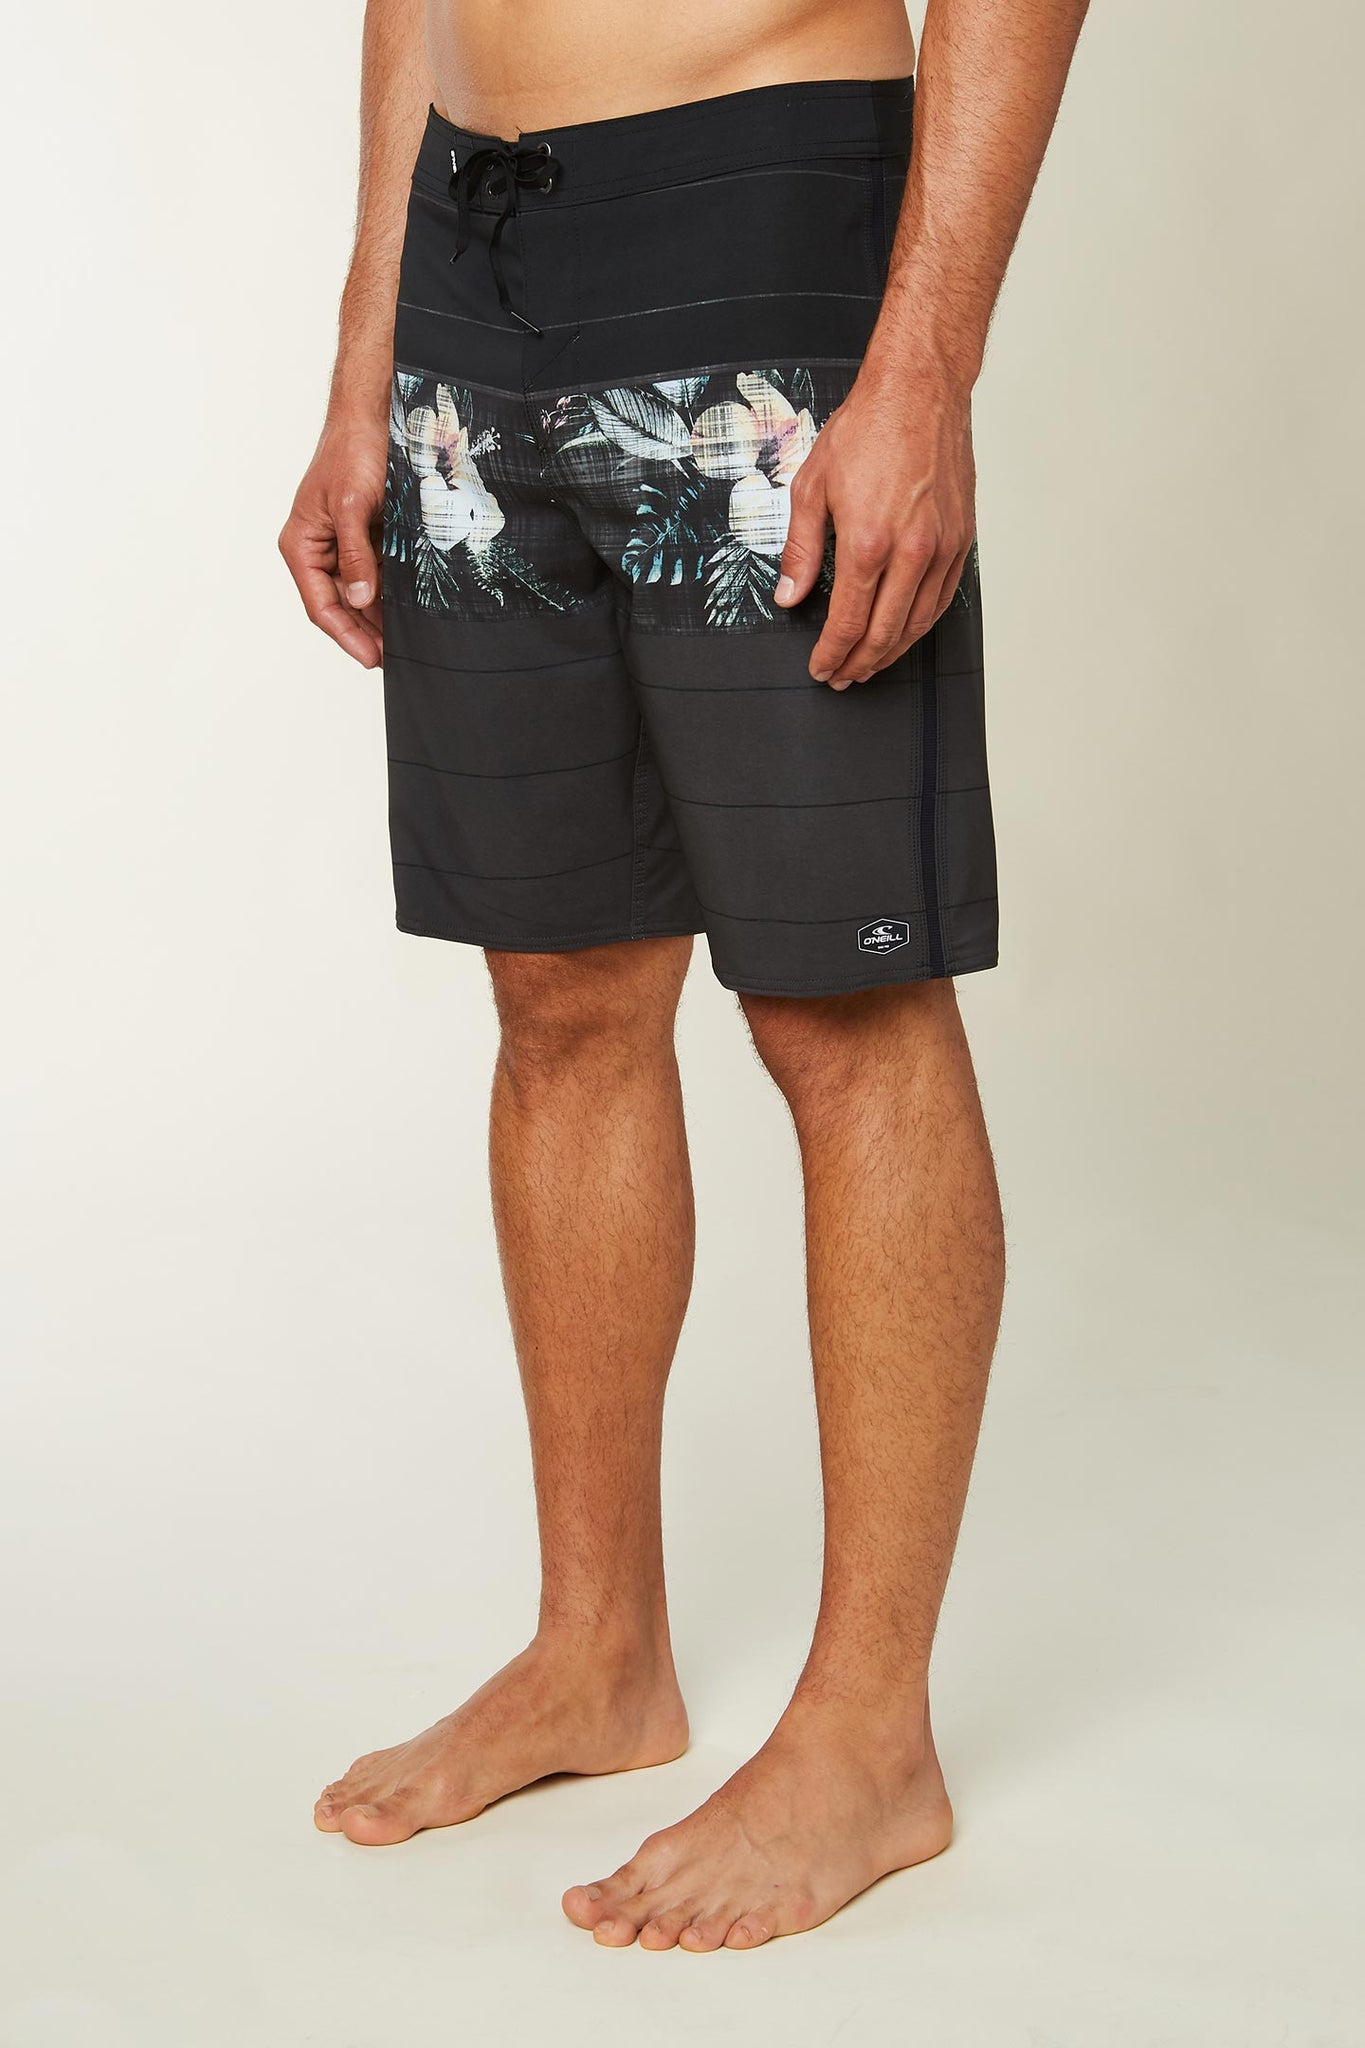 Superfreak Fiori Boardshorts - Black | O'Neill